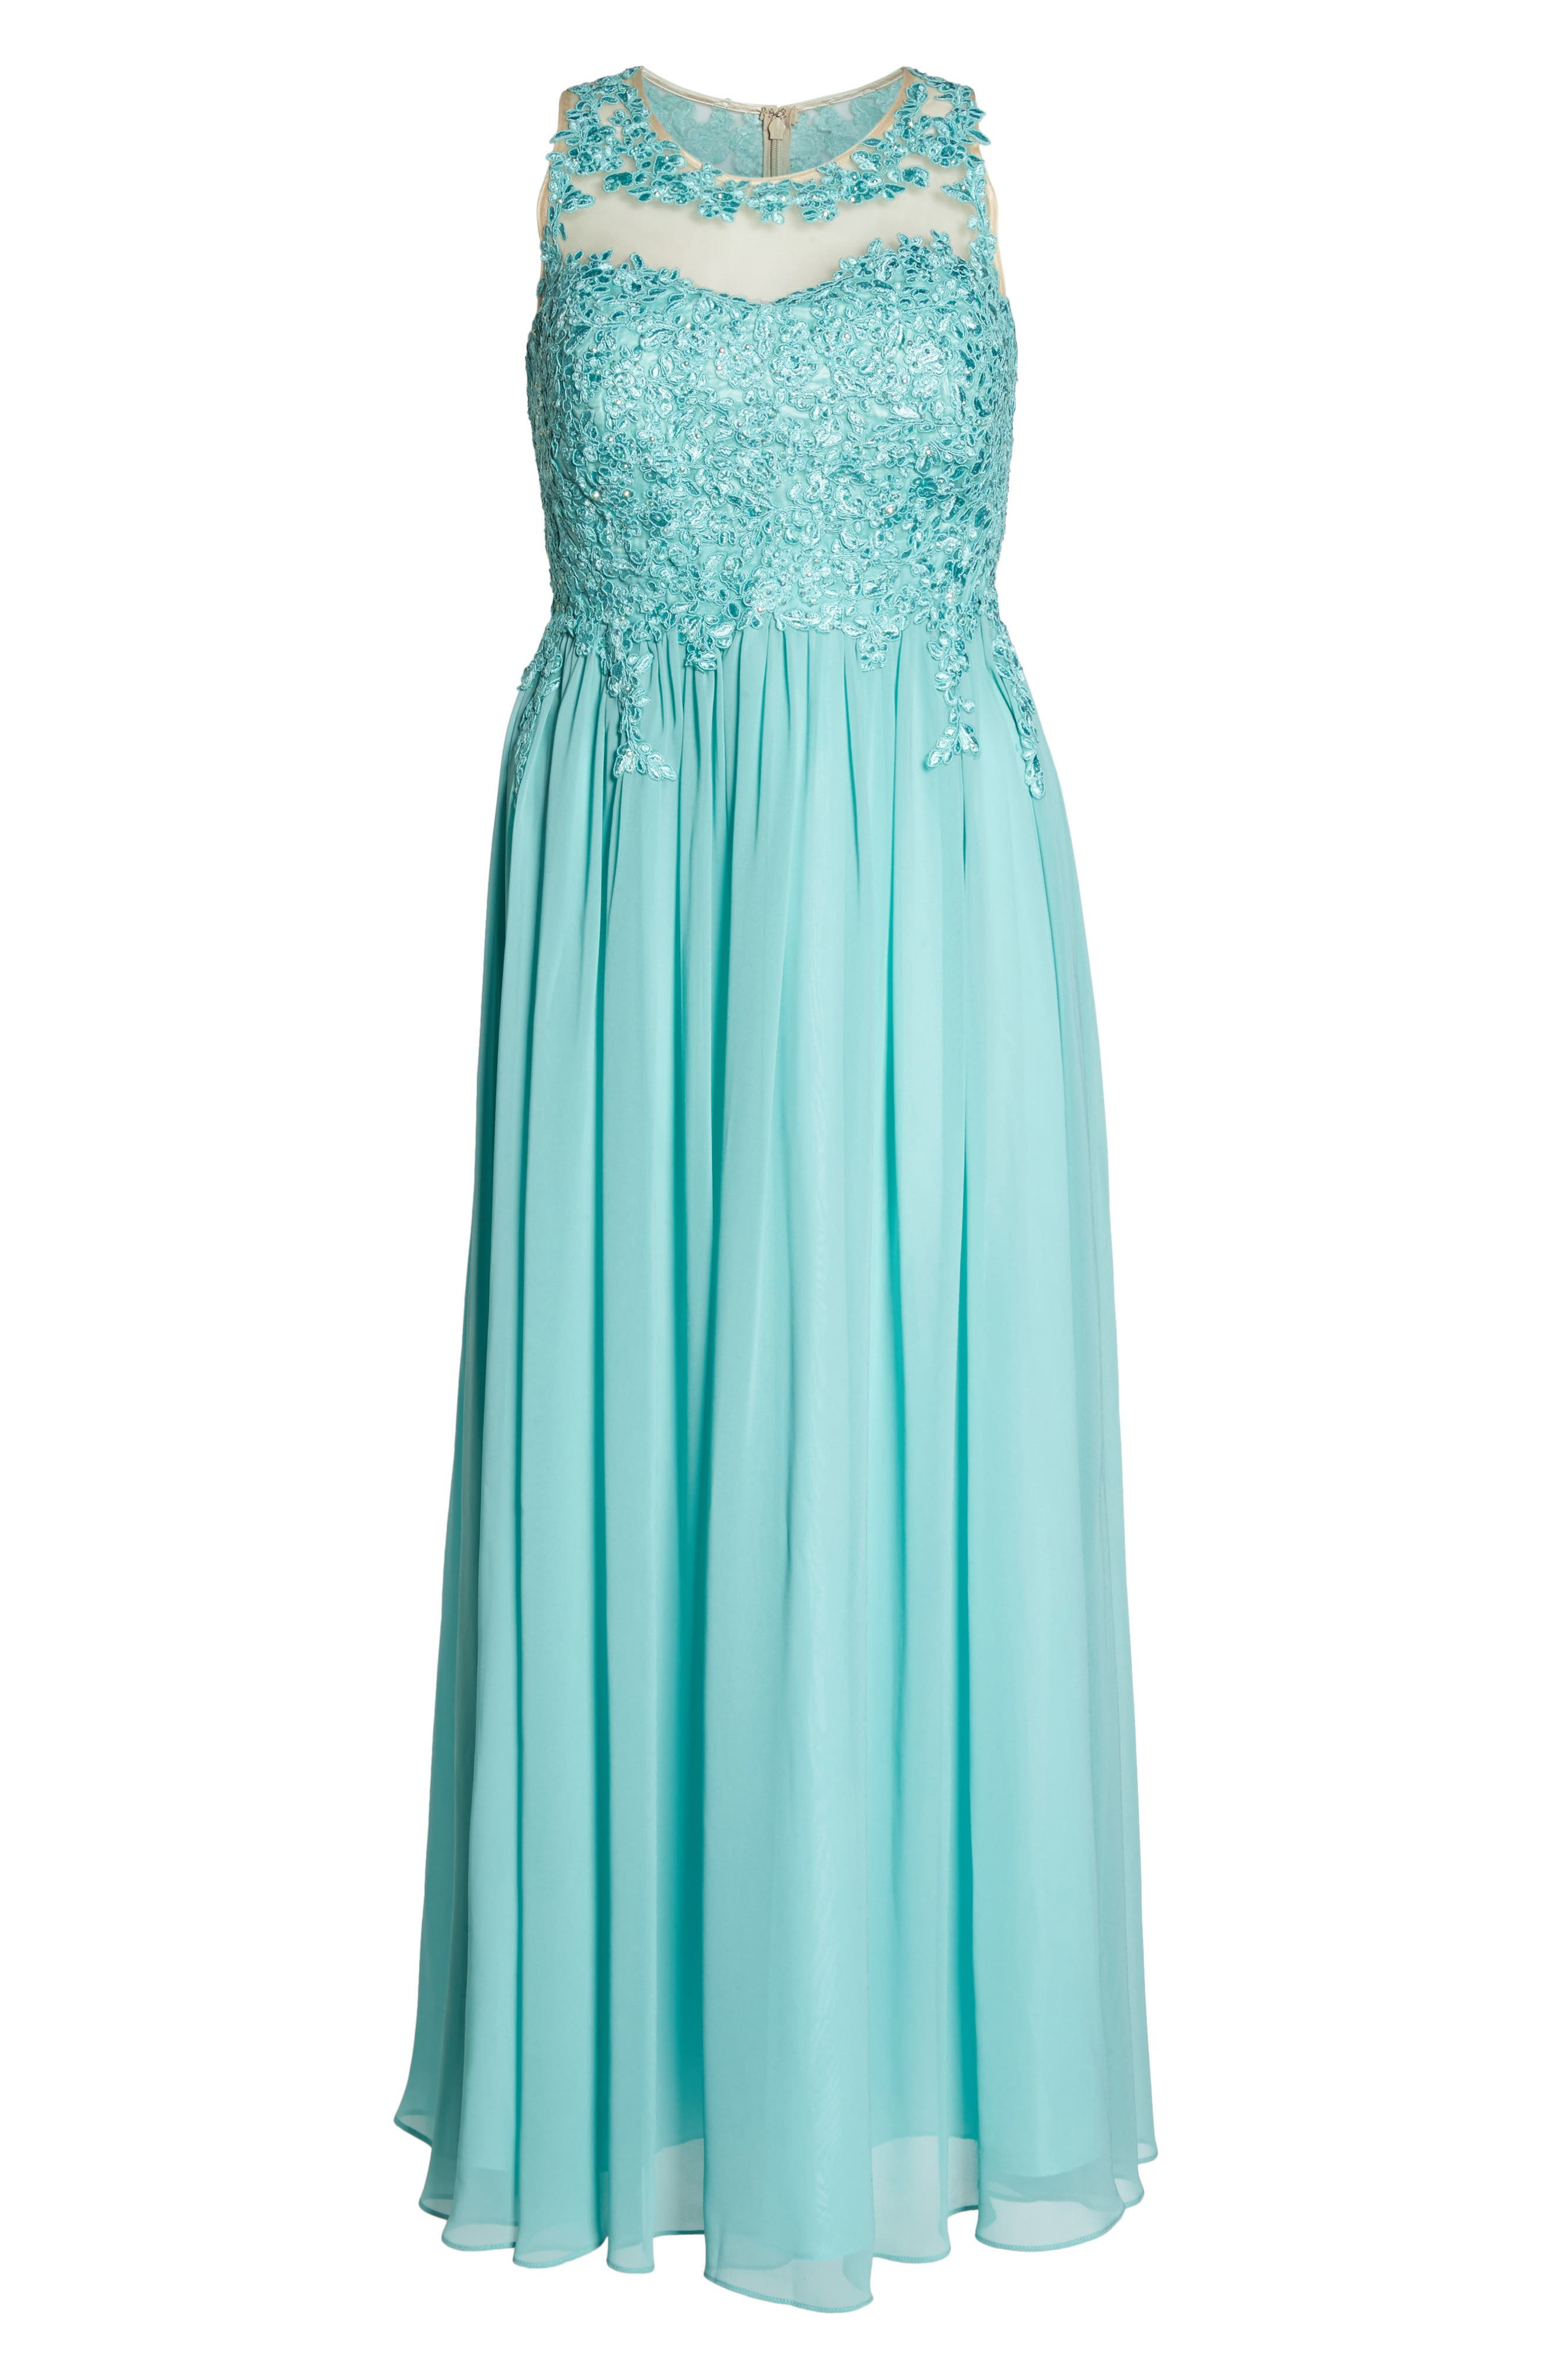 Embellished A-Line Chiffon Gown,                             Alternate thumbnail 6, color,                             330